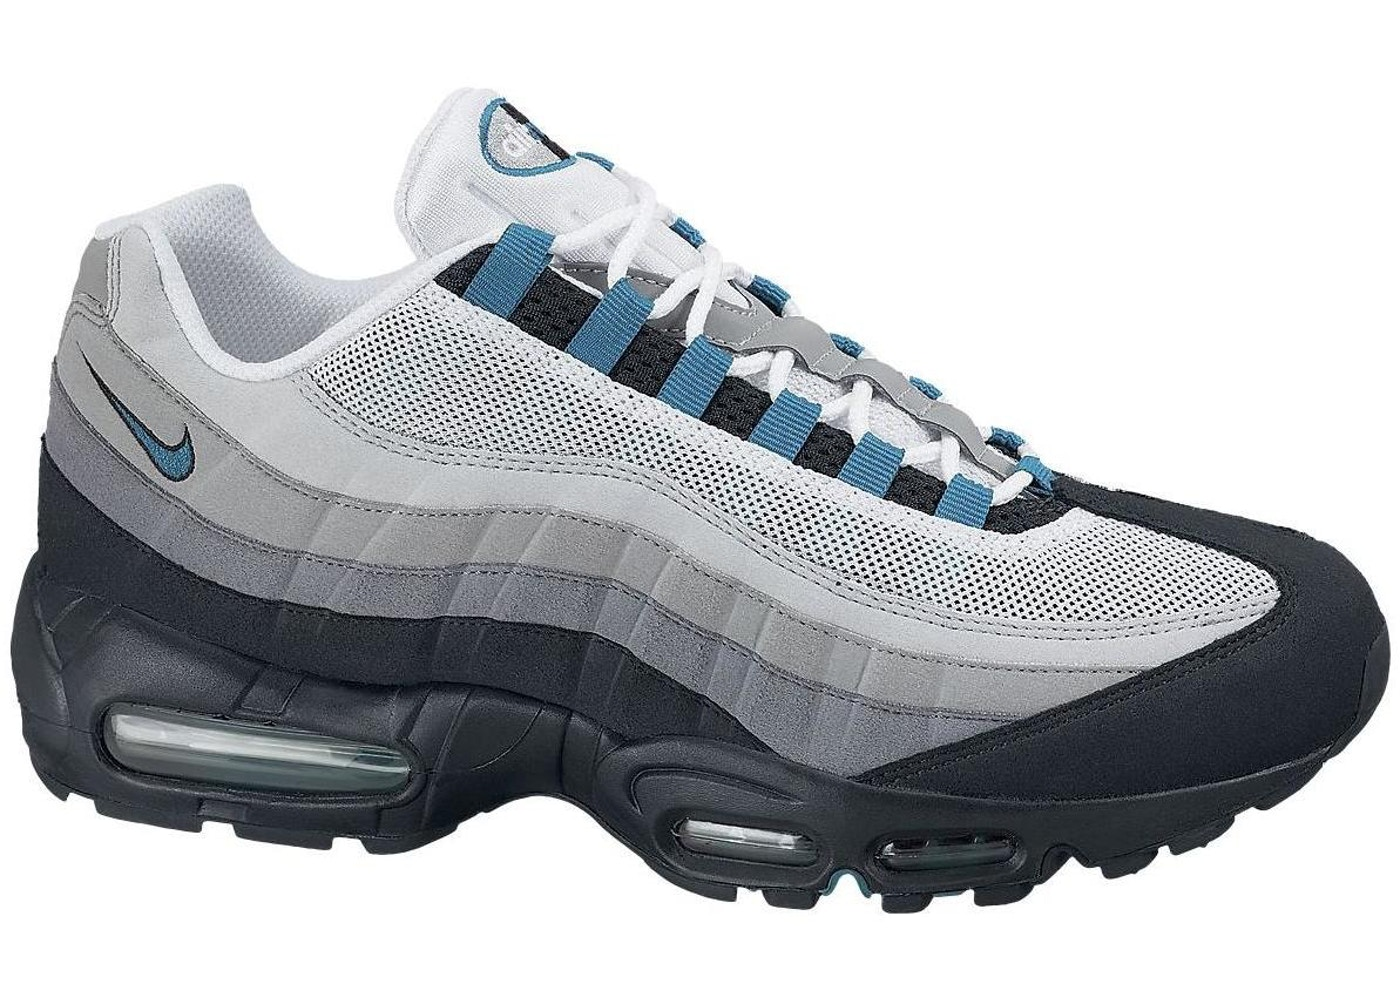 factory authentic 50afe 454d6 Air Max 95 Freshwater